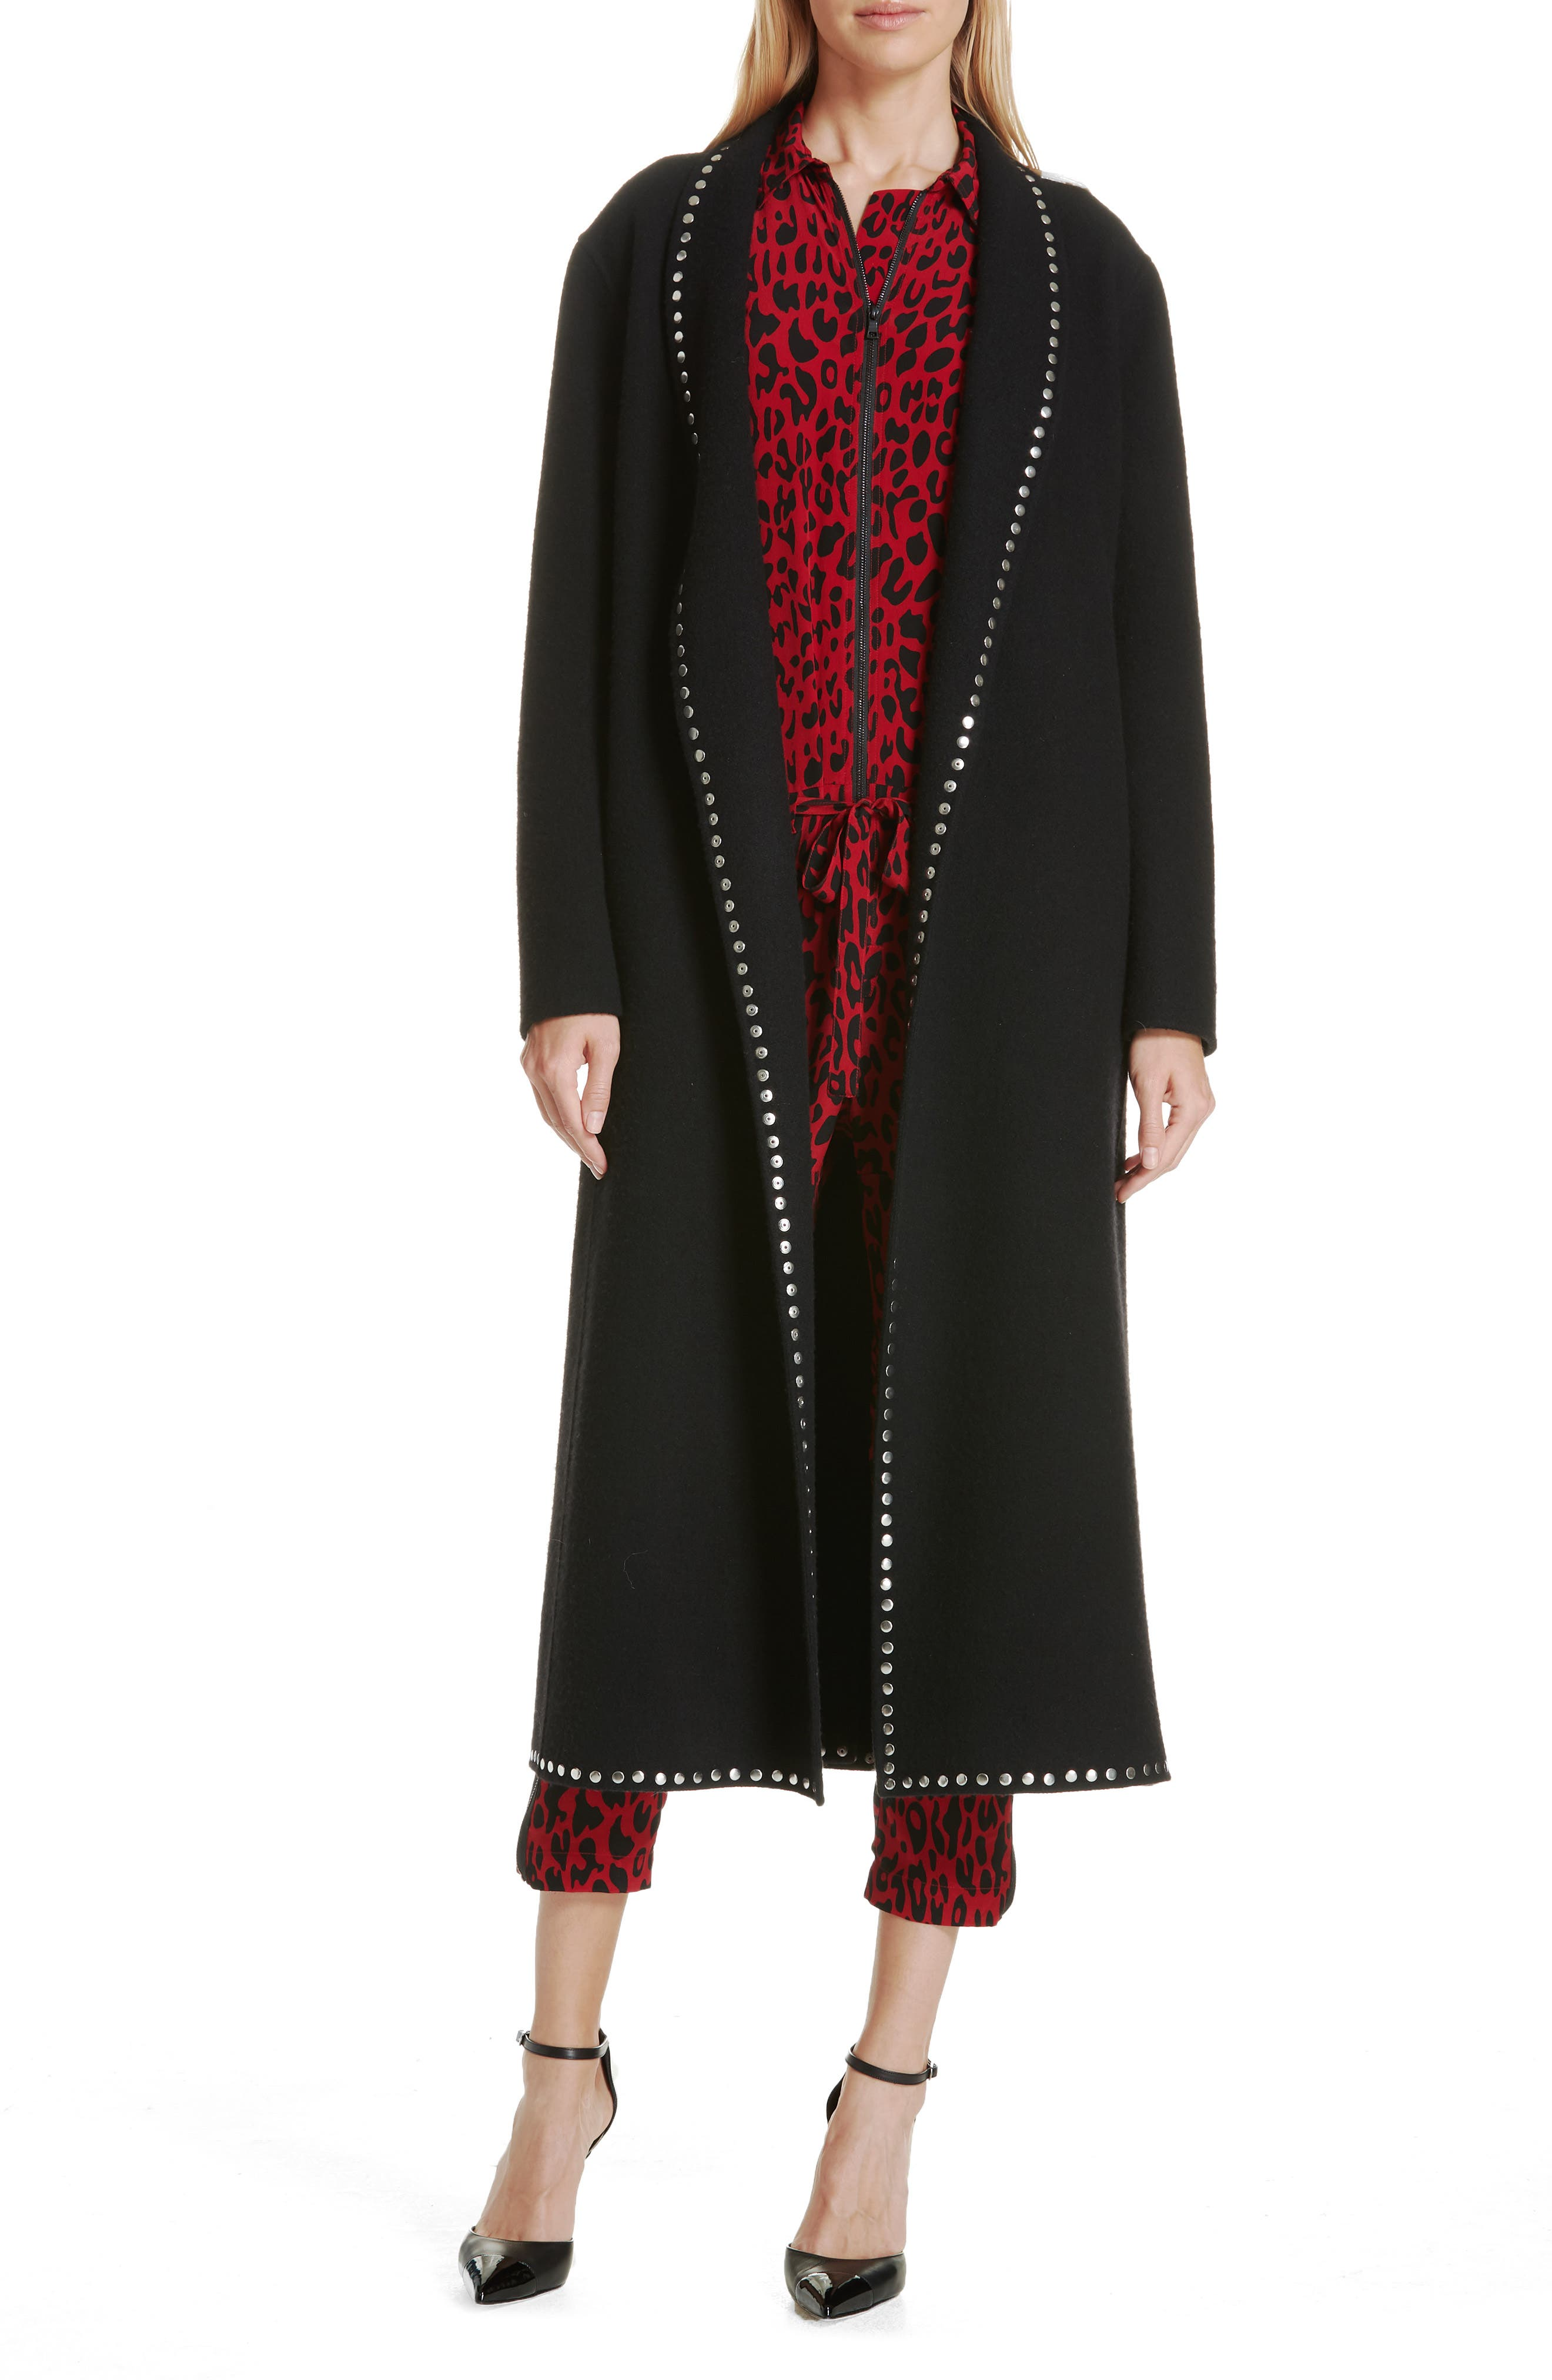 ROBERT RODRIGUEZ Studded Wool Blend Coat, Main, color, 001